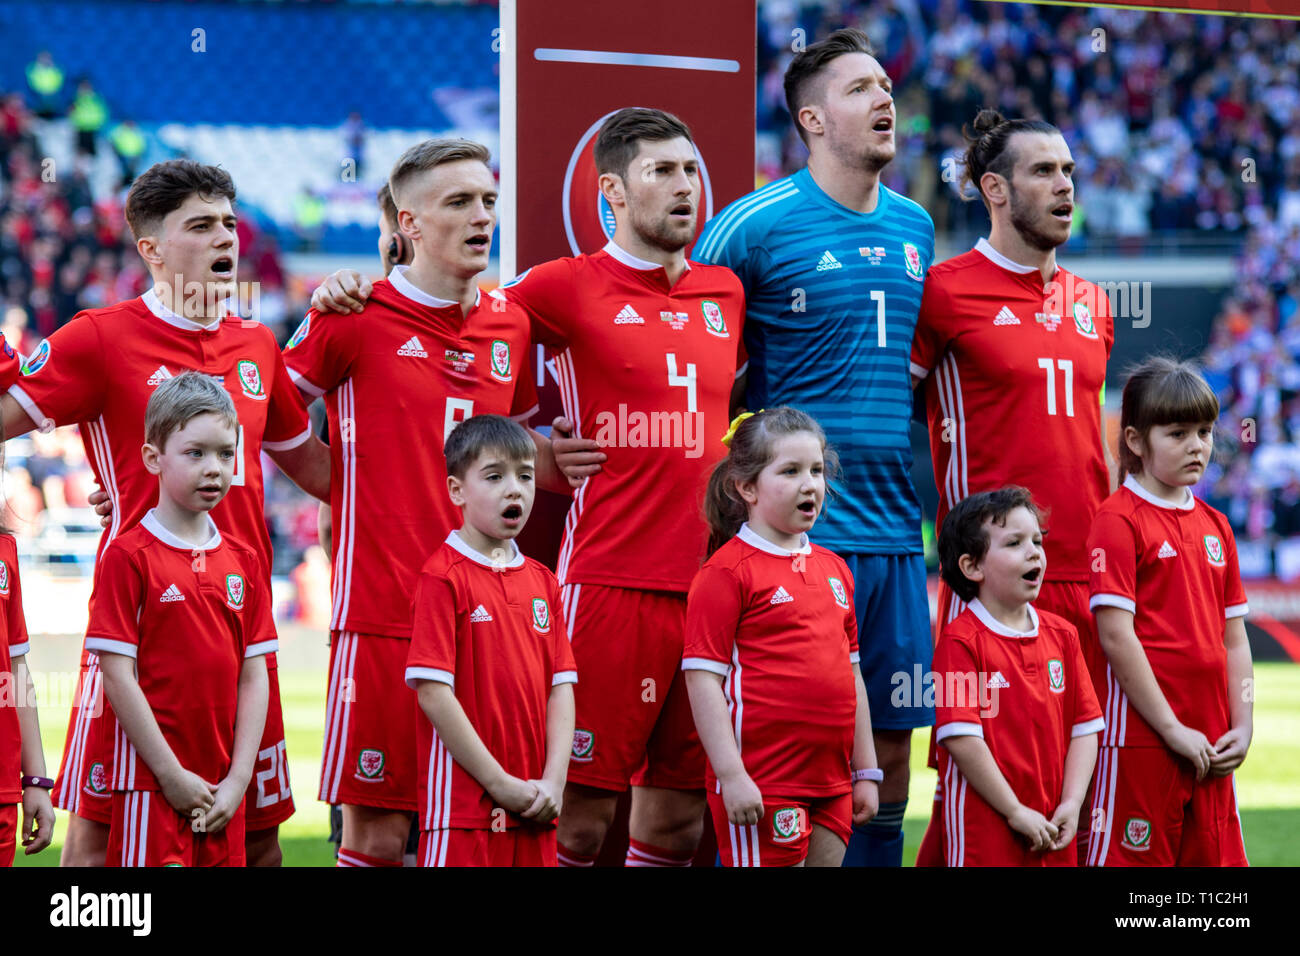 Dan James, Matt Smith, Ben Davies, Wayne Hennessey & Gareth Bale lineup for the national anthem. Wales v Slovakia UEFA Euro 2020 Qualifier in Cardiff. - Stock Image